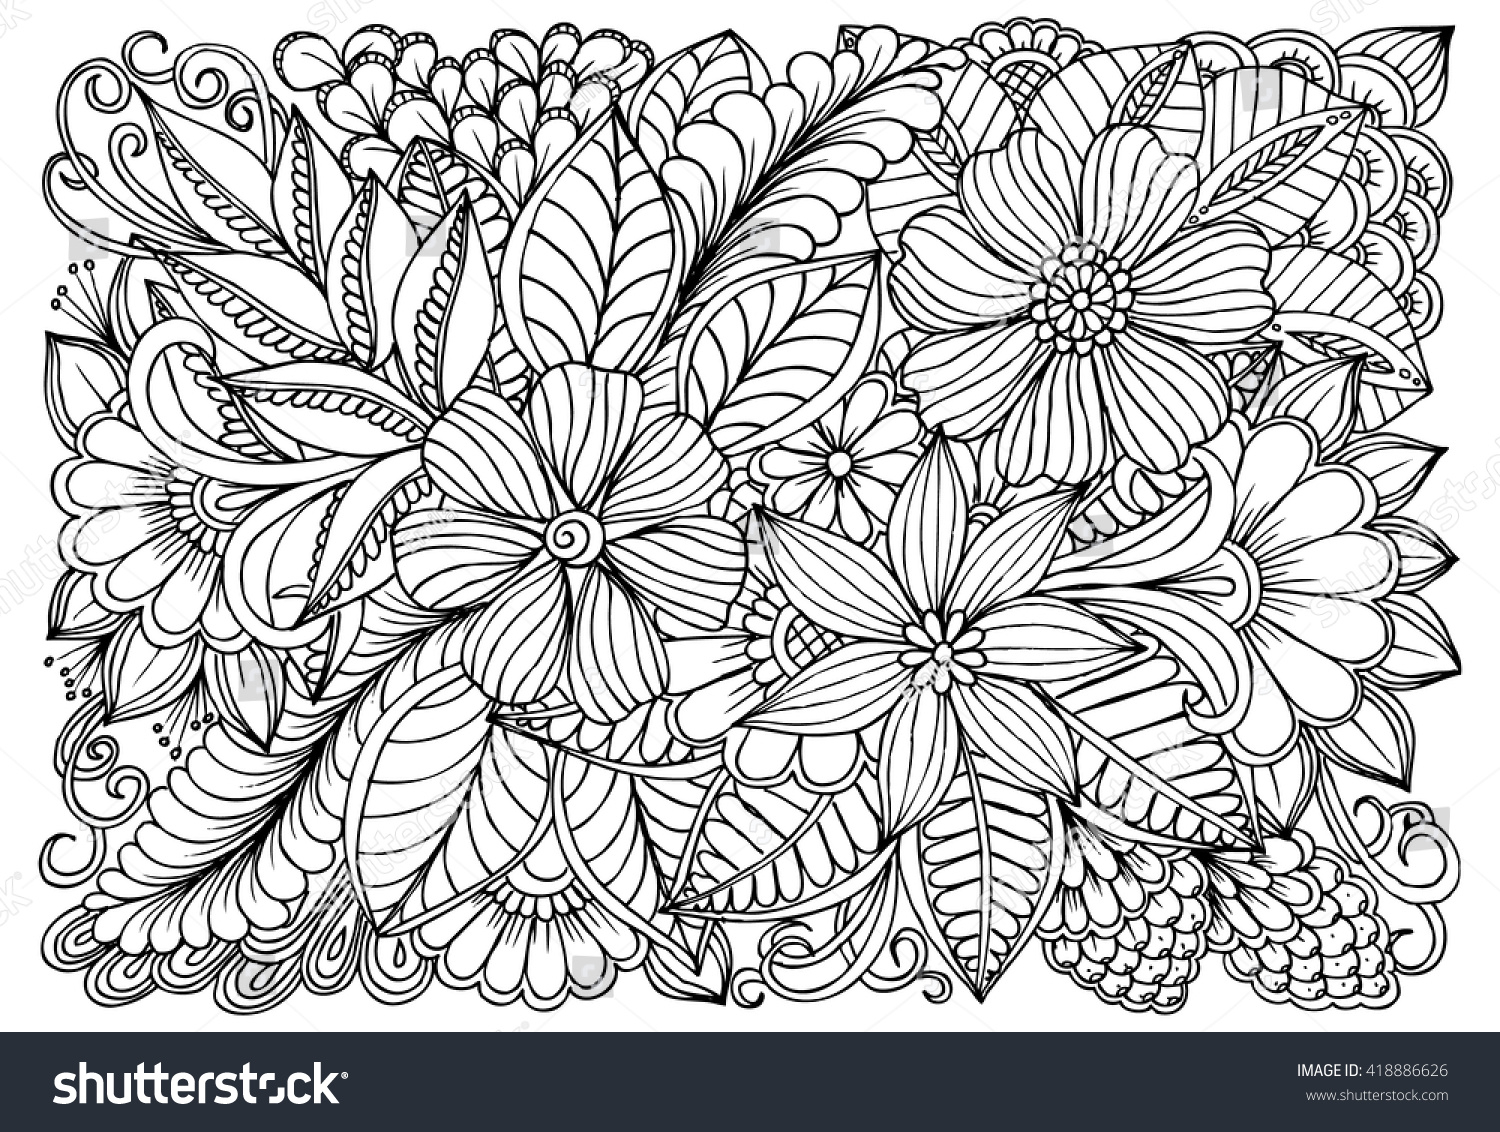 Doodle Art Coloring Pages Coloring Pages 41 Marvelous Doodle Art Coloring Book Doodle Art